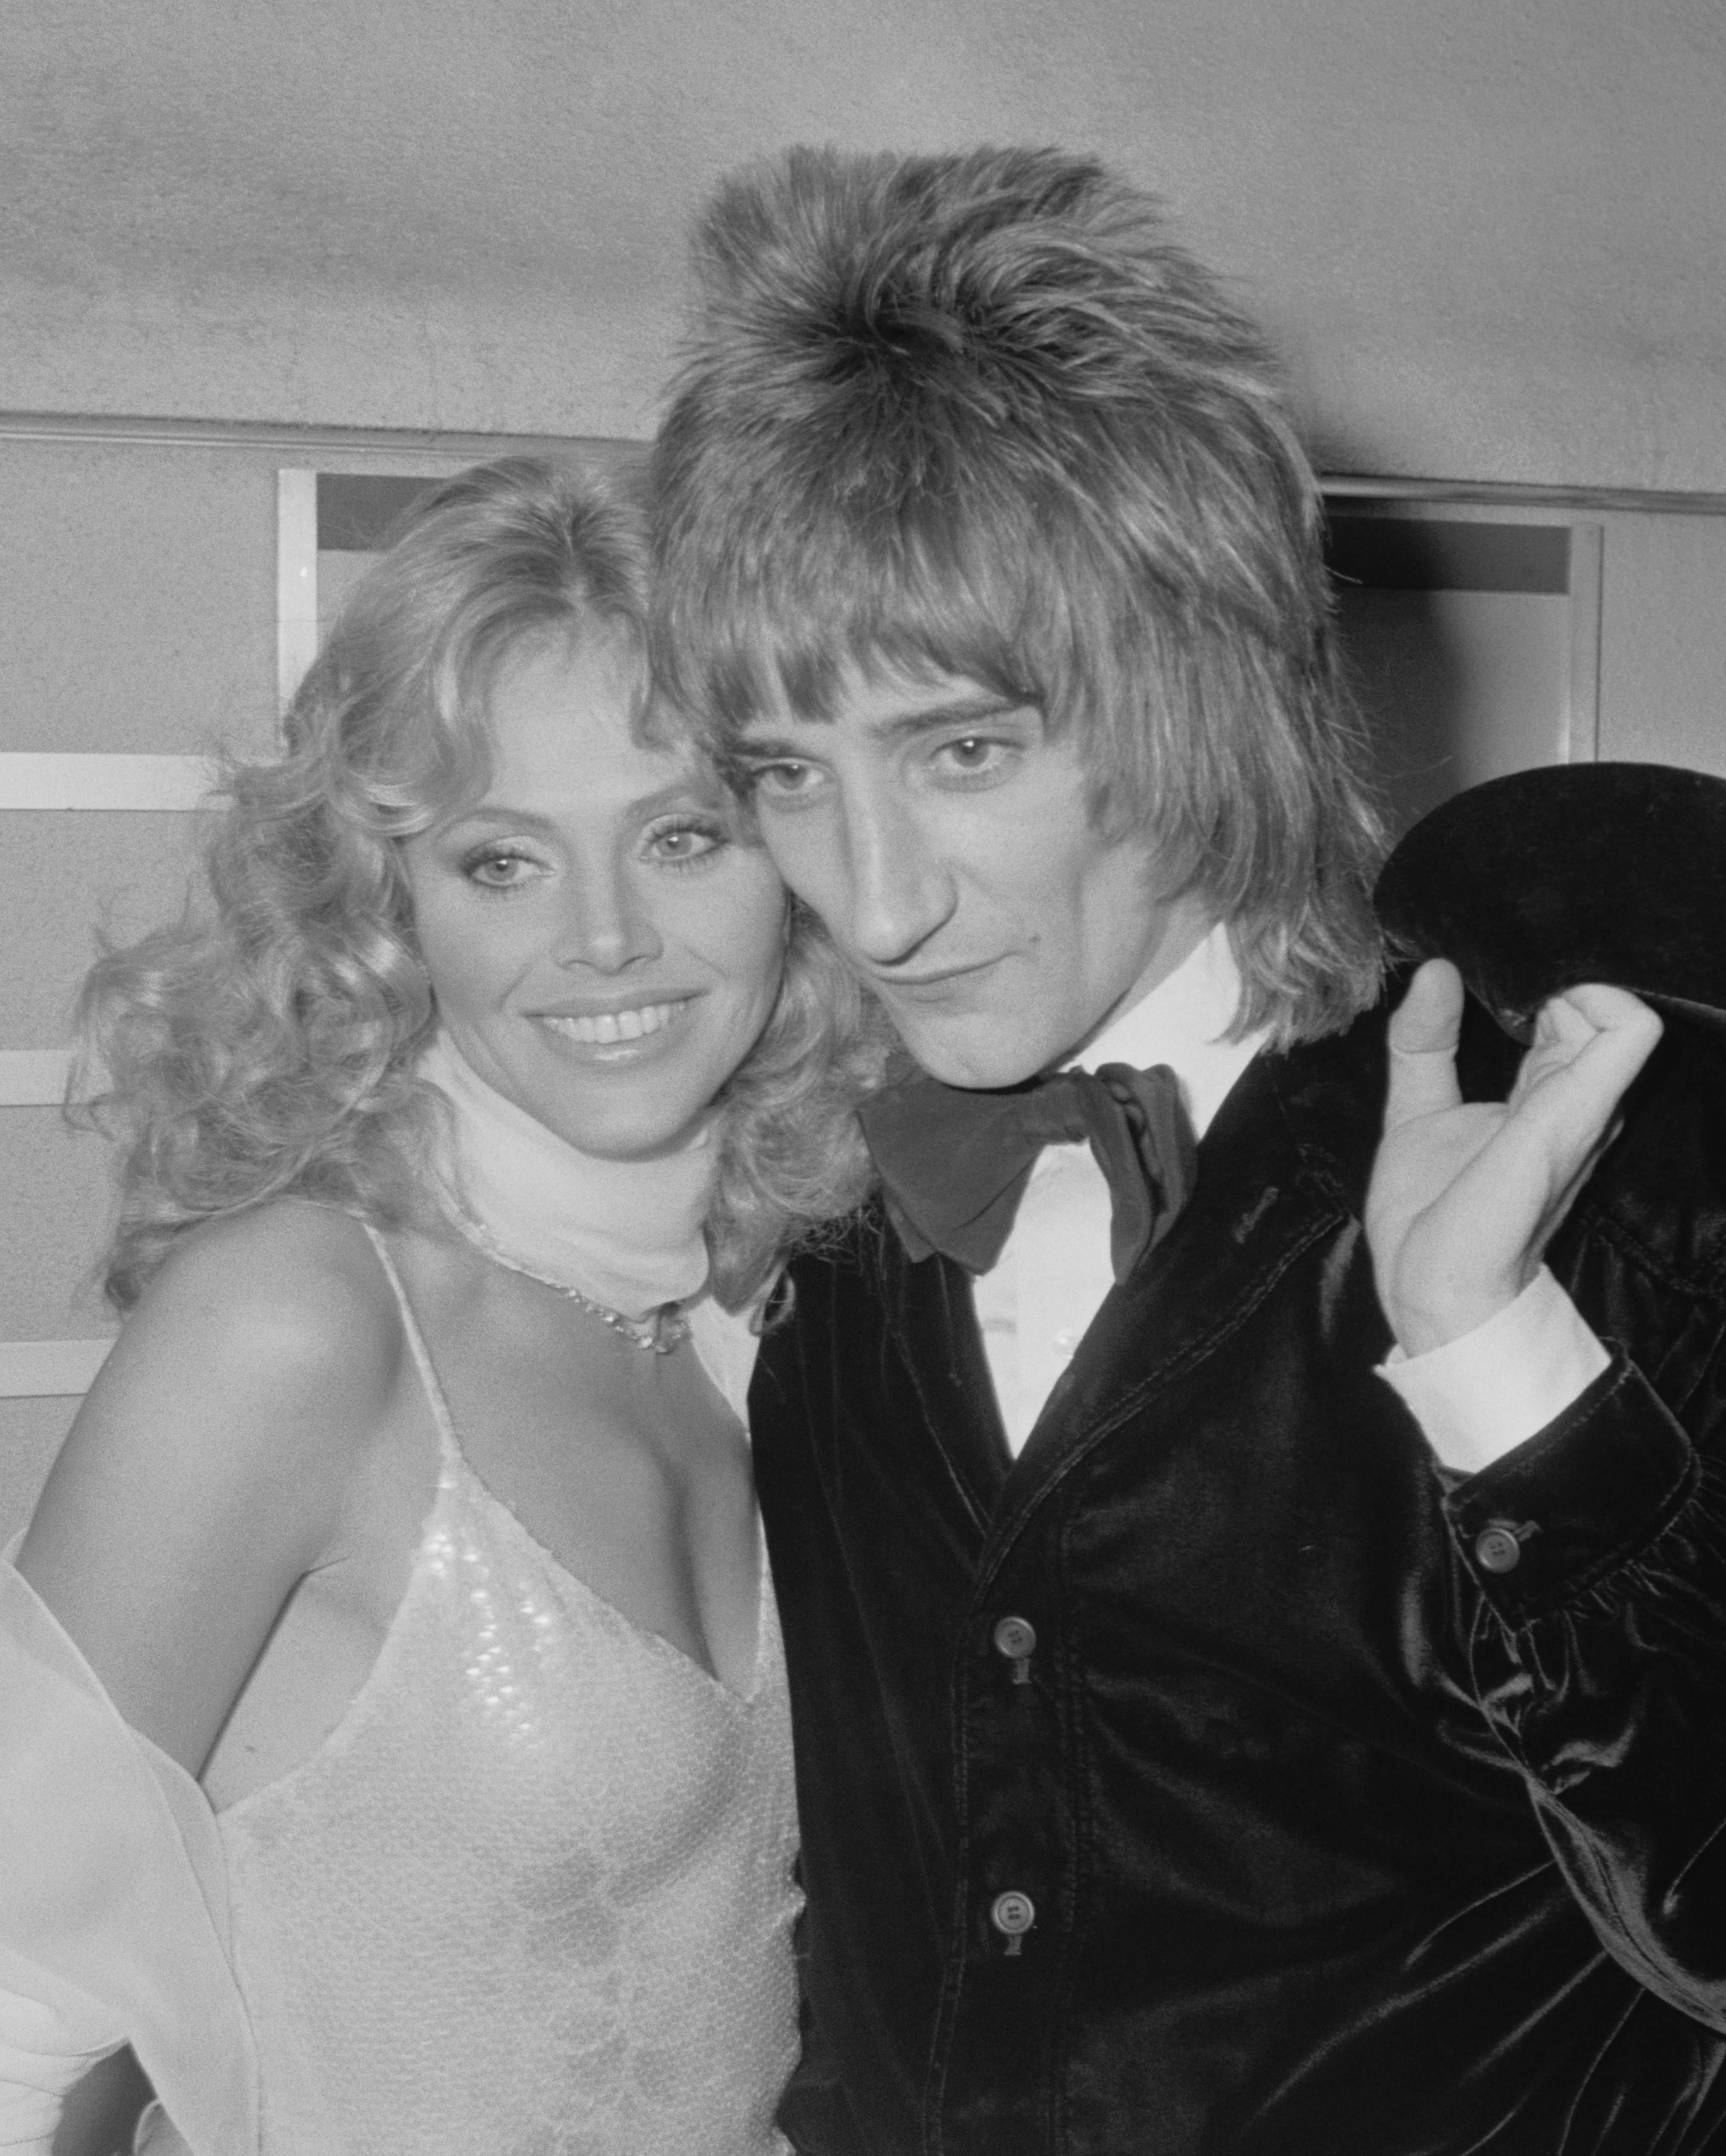 Actress Britt Ekland and her partner, rock star Rod Stewart attend the premiere of the rock opera 'Tommy' at the Leicester Square Theatre, 26th March 1975.  (Photo by Central Press/Hulton Archive/Getty Images)